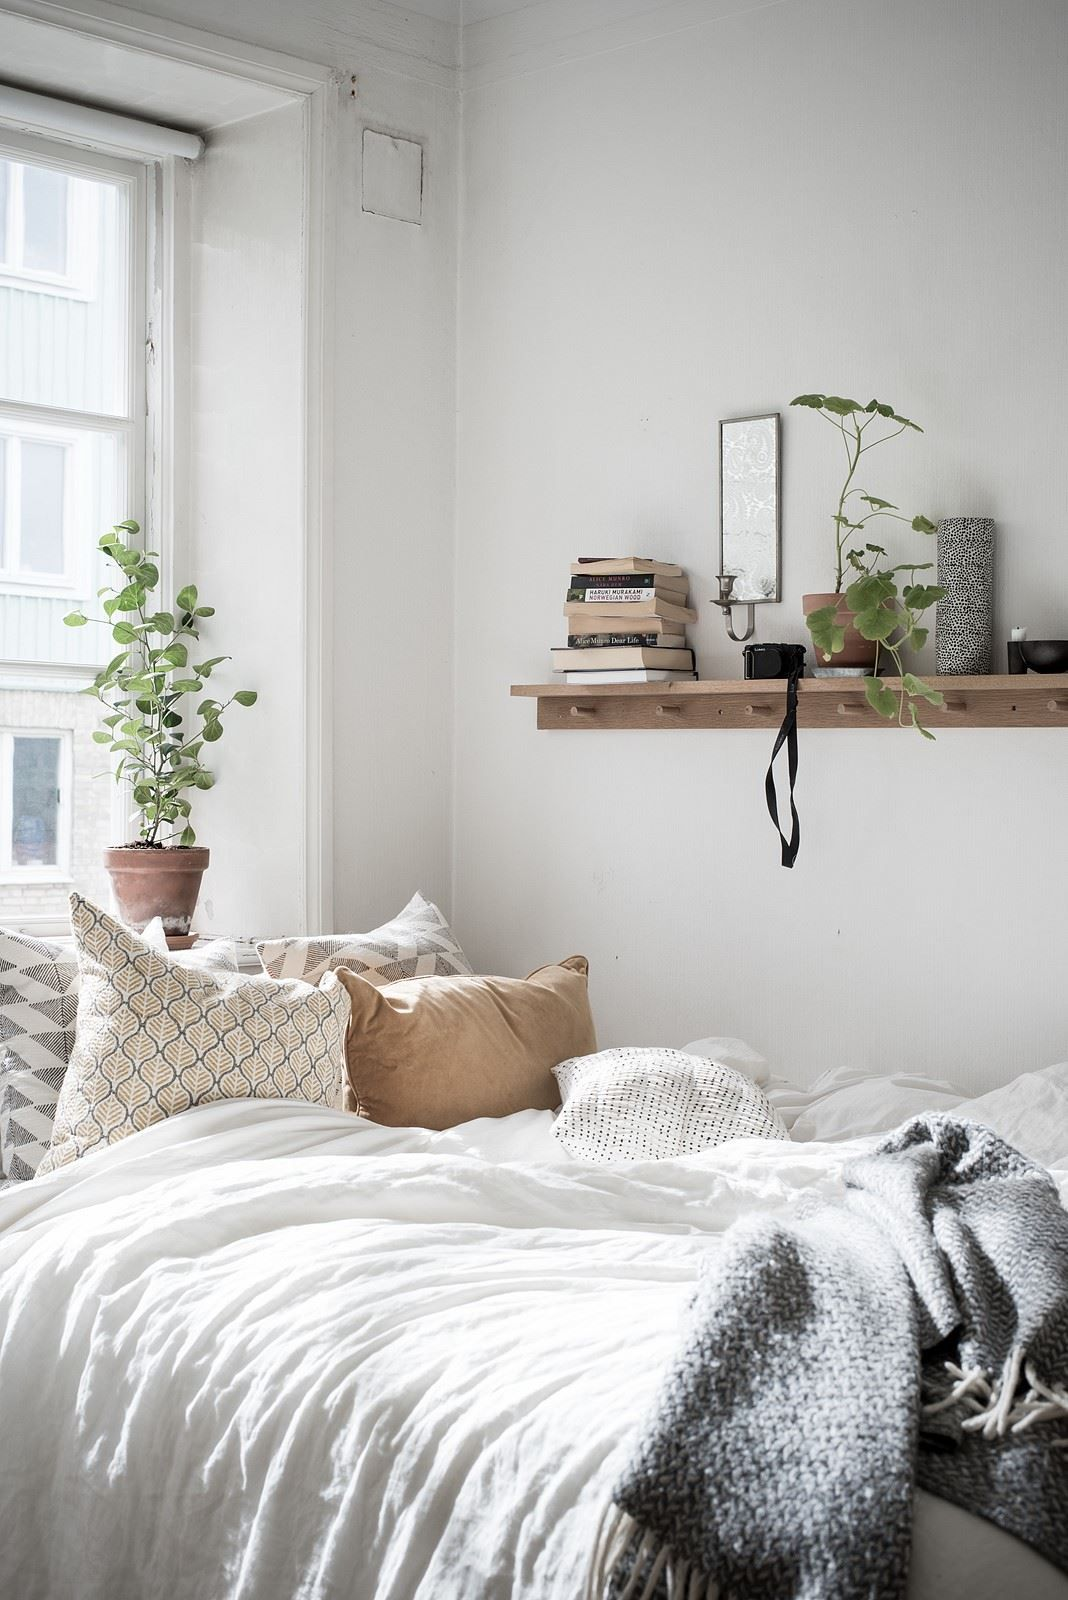 extremely tiny bedroom. To Really Fit In You Need Be Open-minded. The General Look Is Extremely Swedish. It Very Statuesque And Feminine. If Want Accomplish Tiny Bedroom